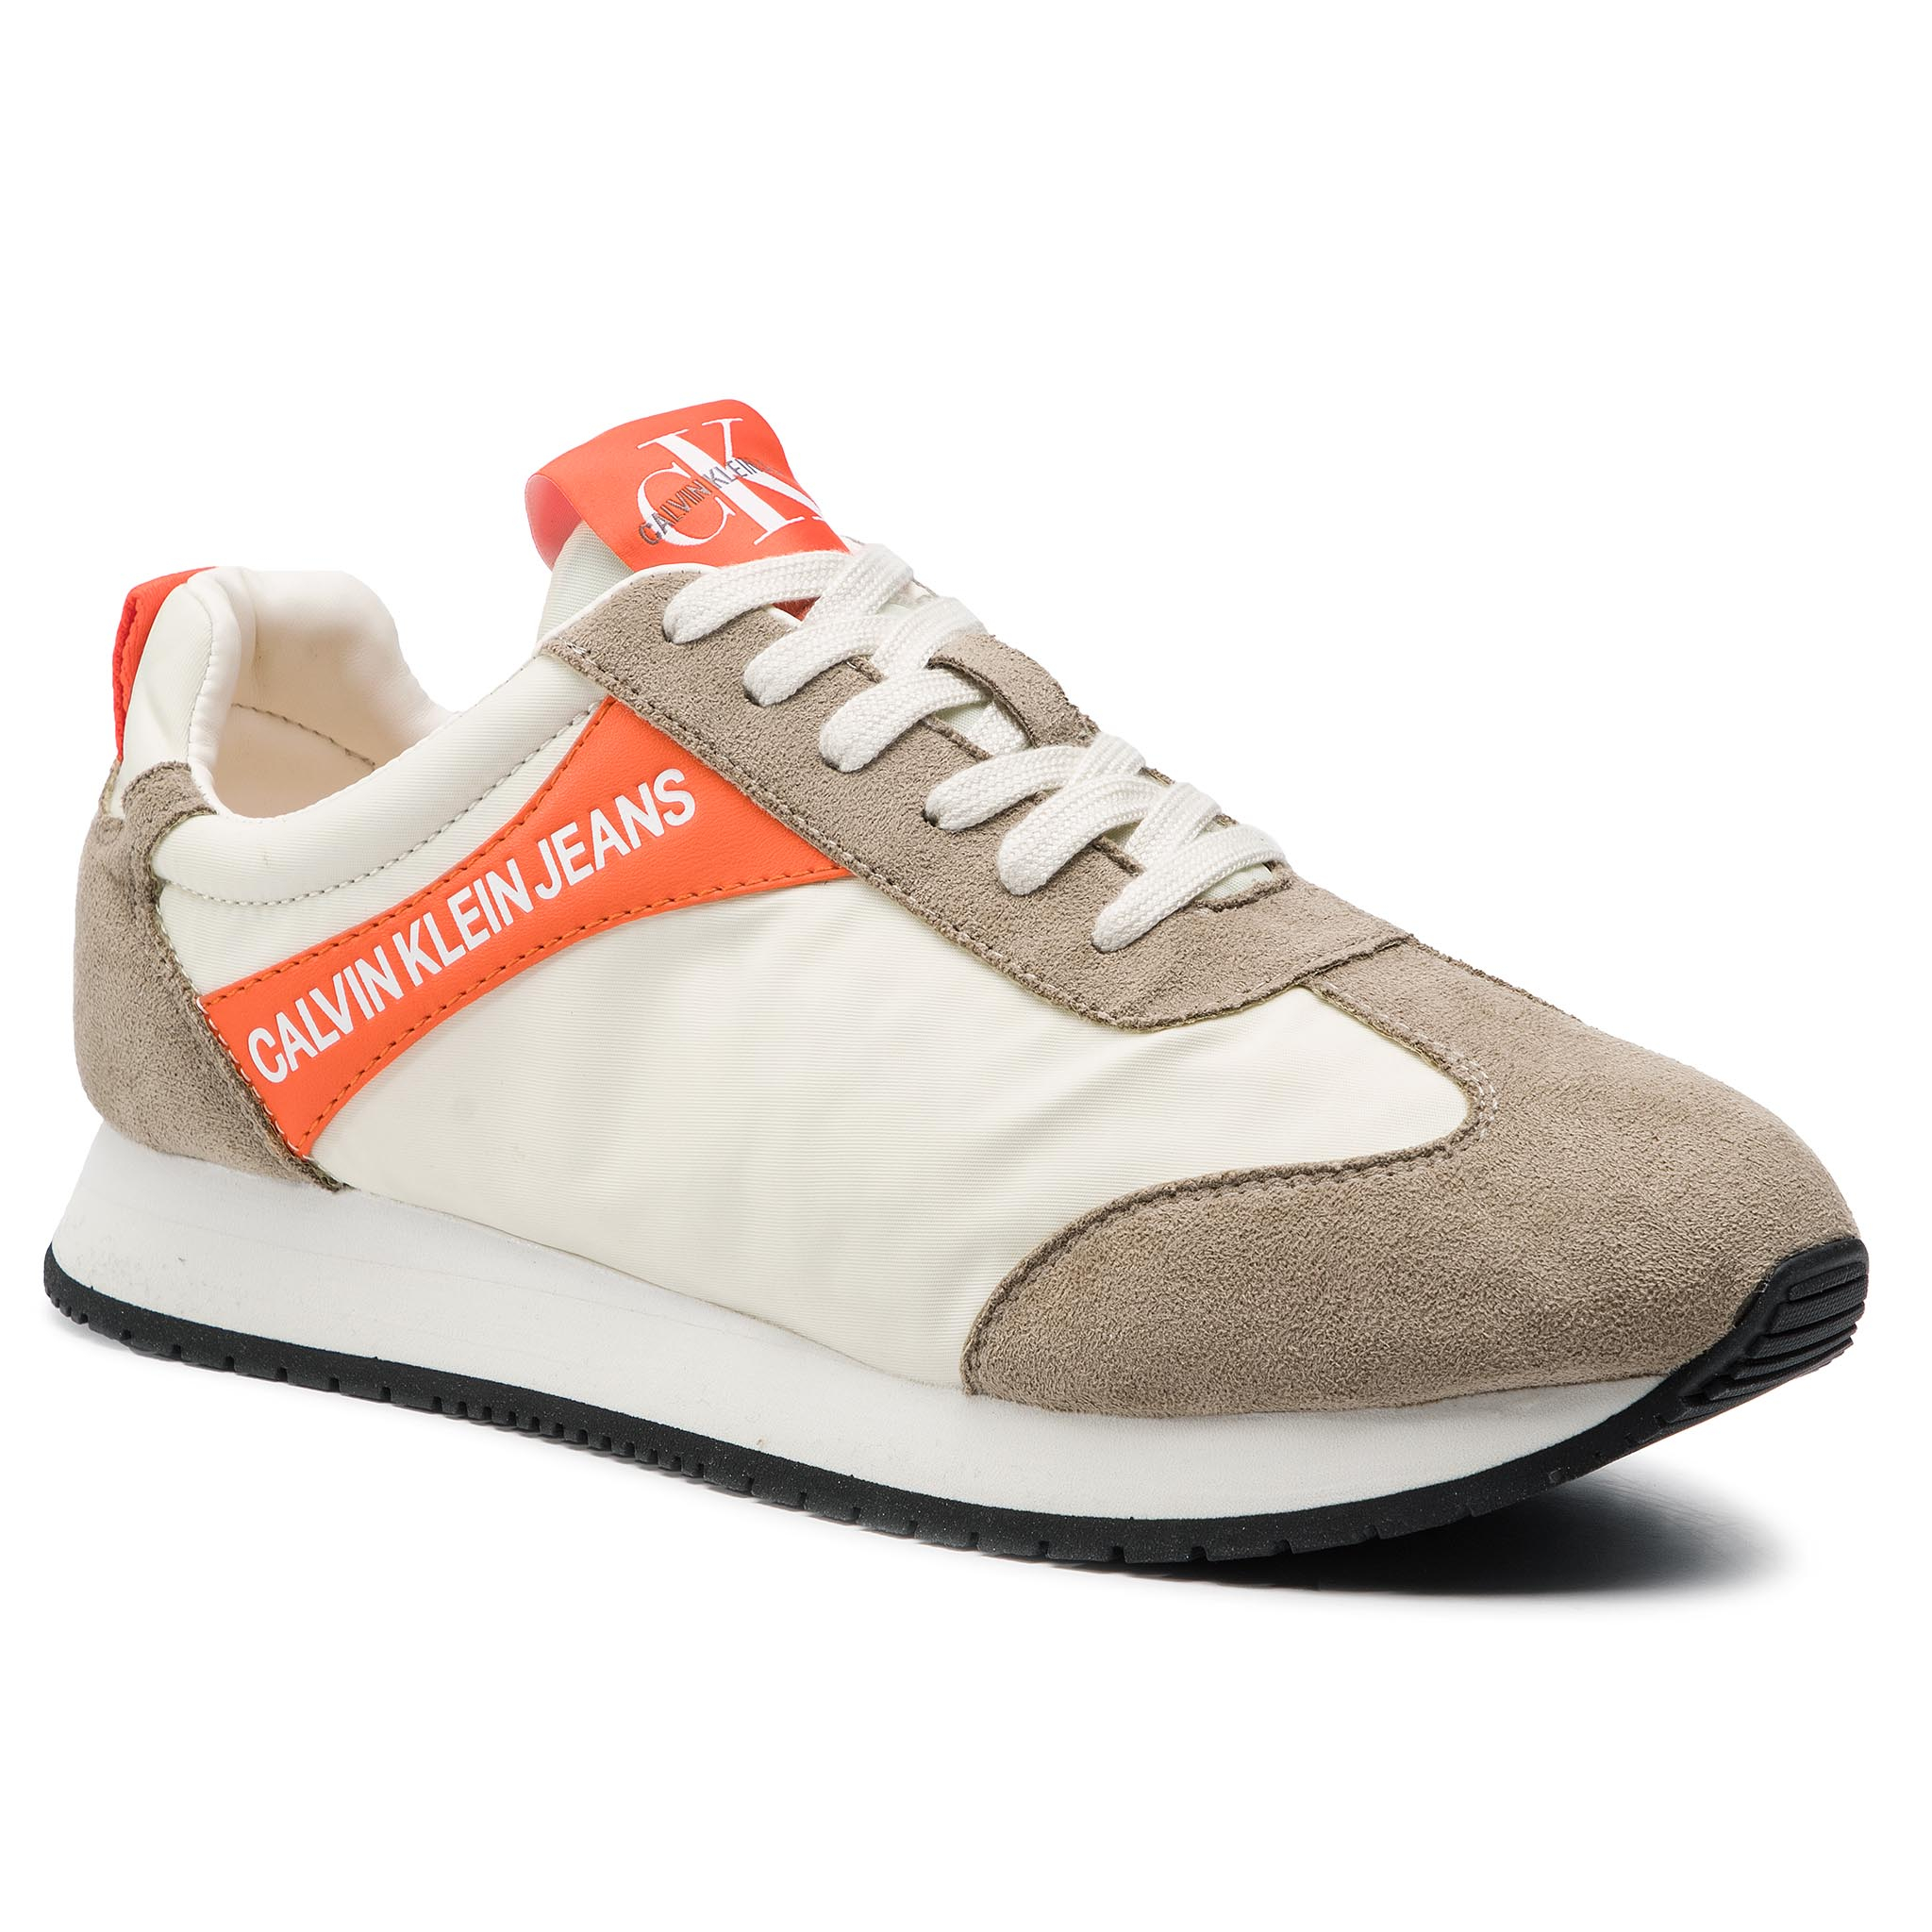 Image of Sneakers CALVIN KLEIN JEANS - Jerrold S0615 Multi Off White